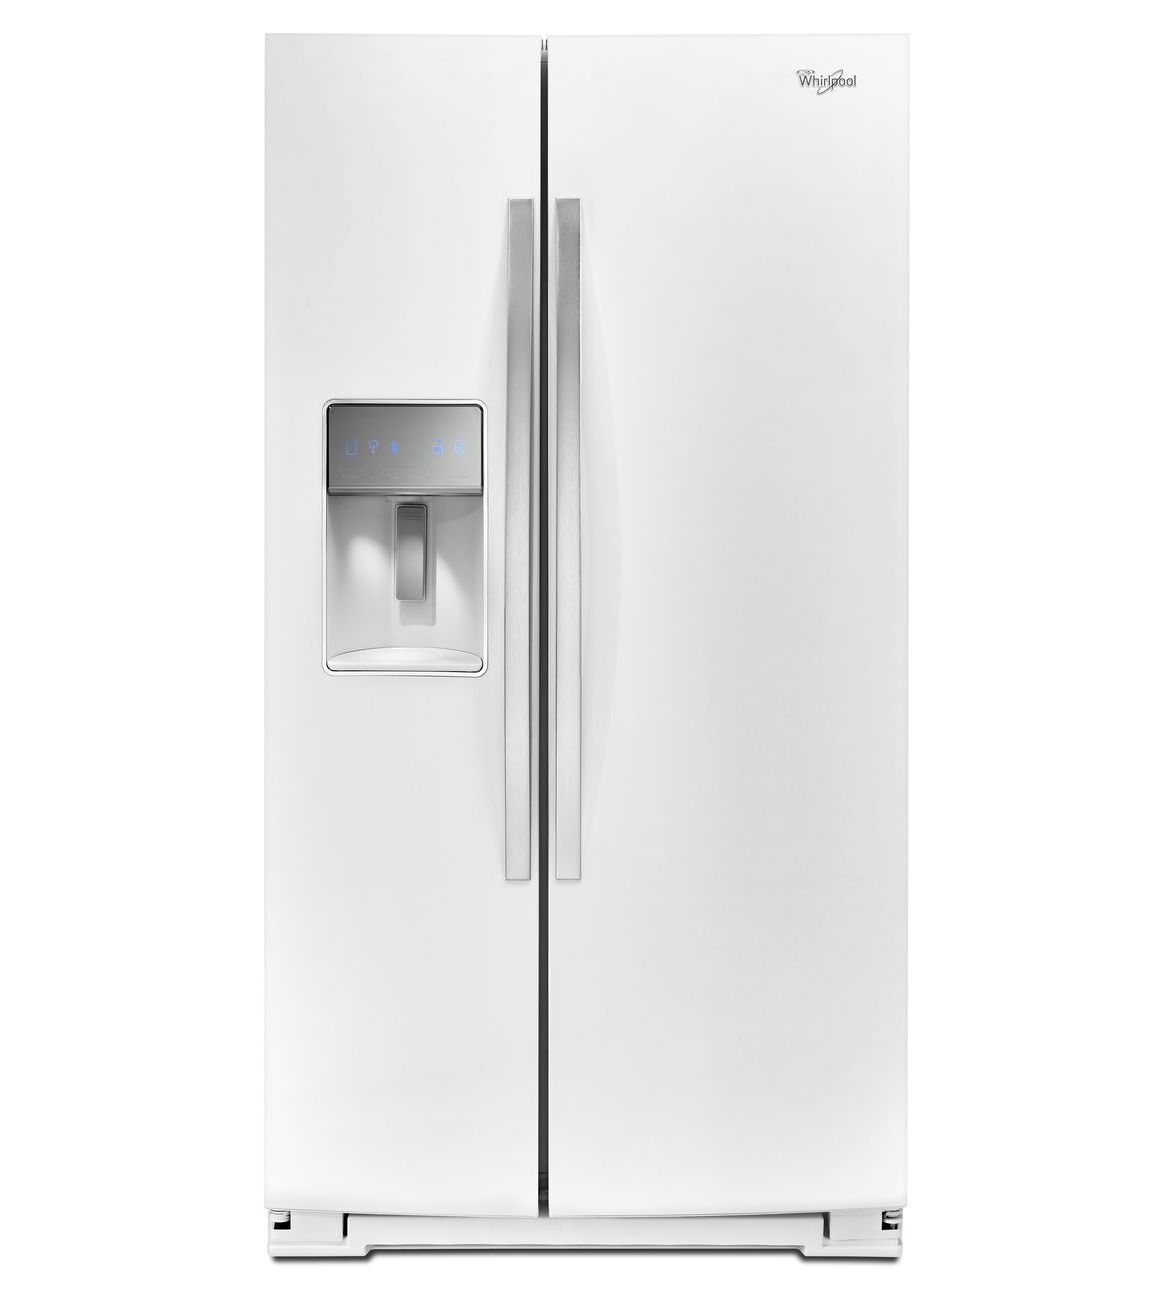 Whirlpool White Ice Color Appliances - Explore stainless steel appliances and more